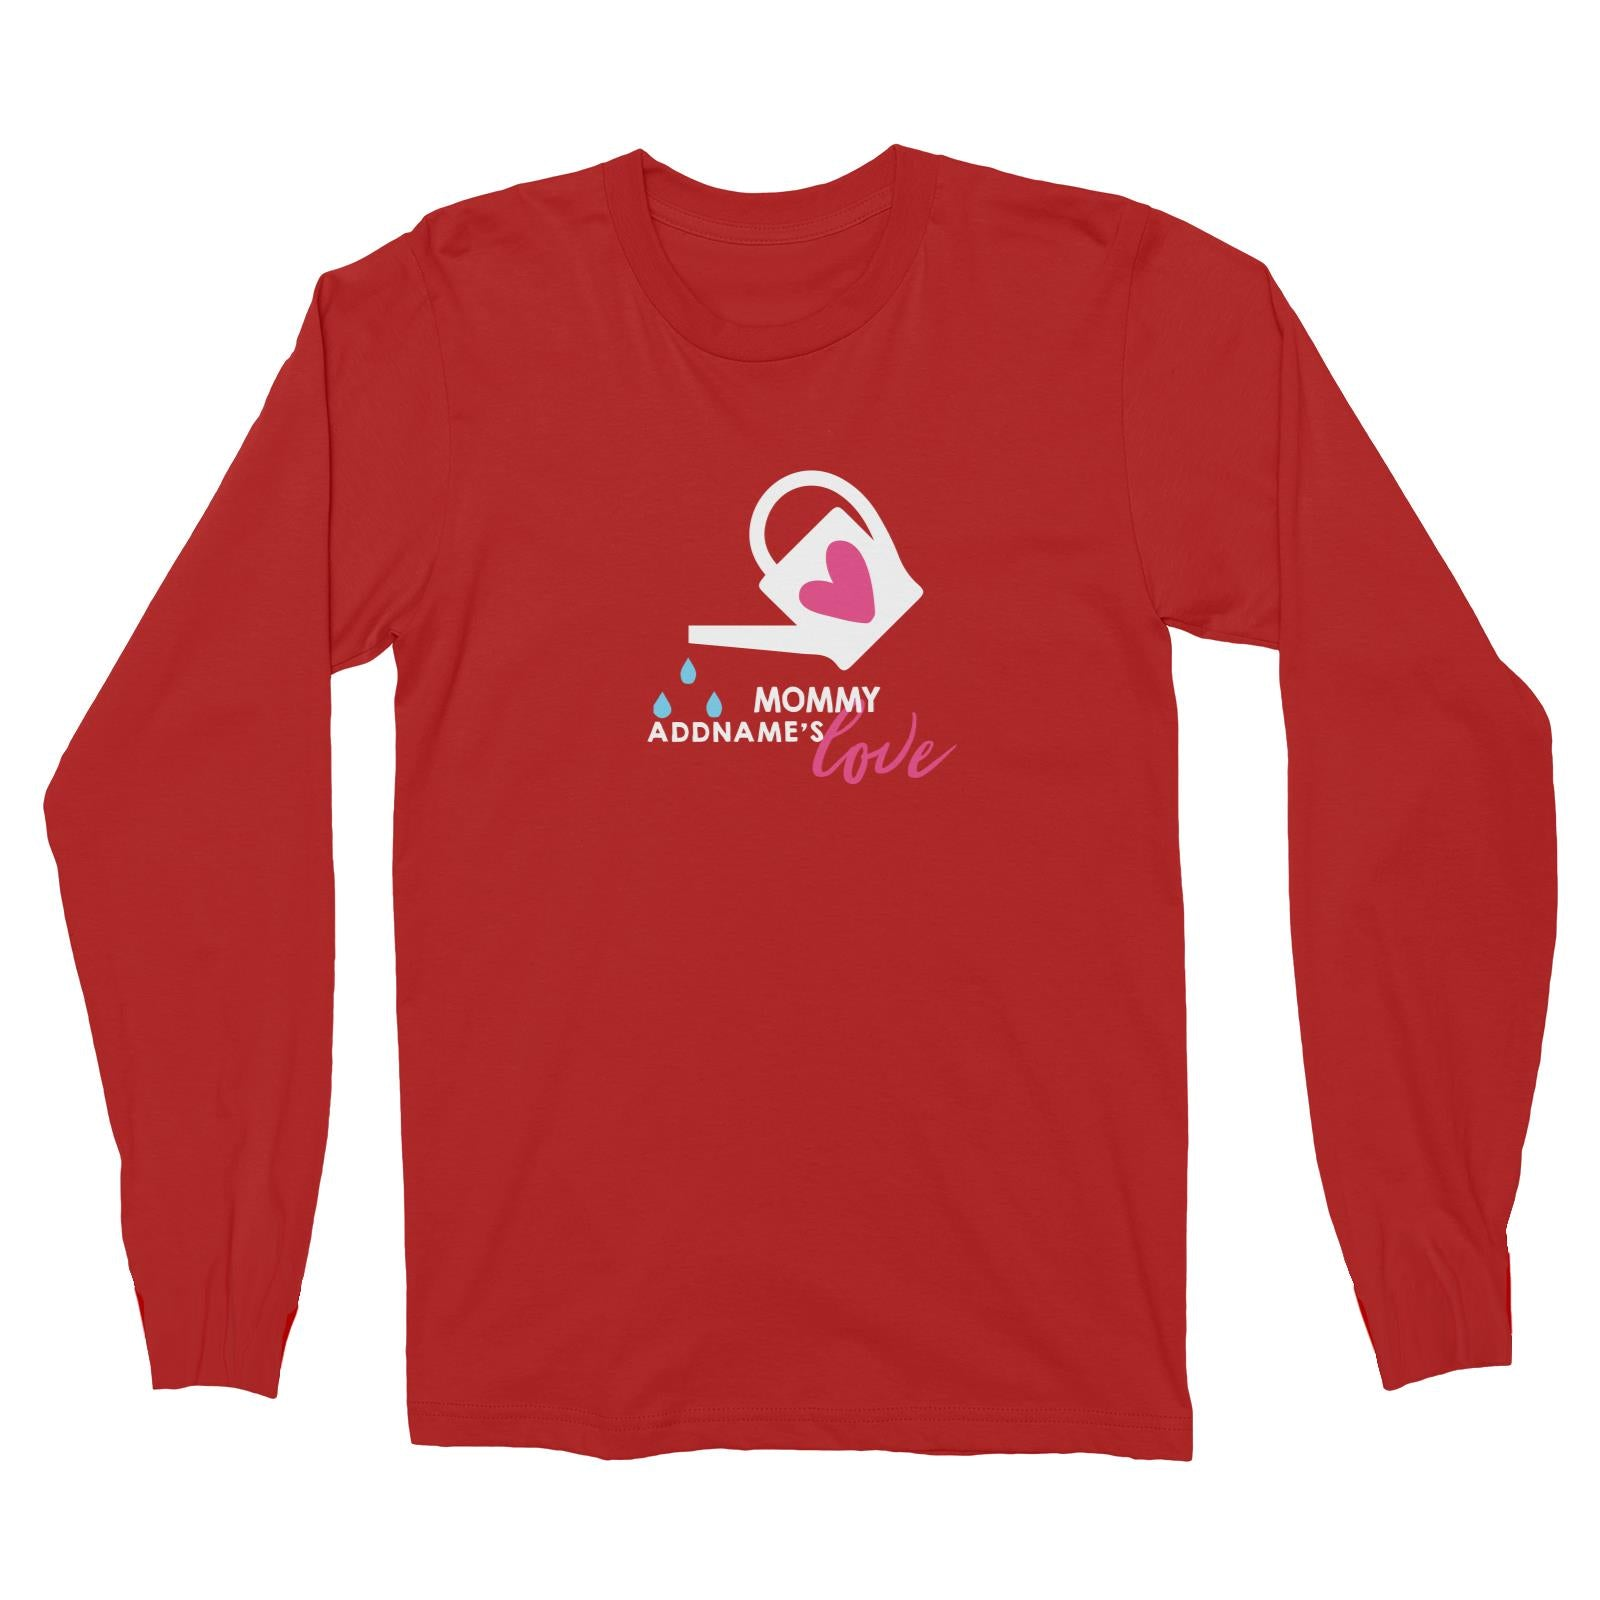 Nurturing Mommy's Love Addname Long Sleeve Unisex T-Shirt  Matching Family Personalizable Designs